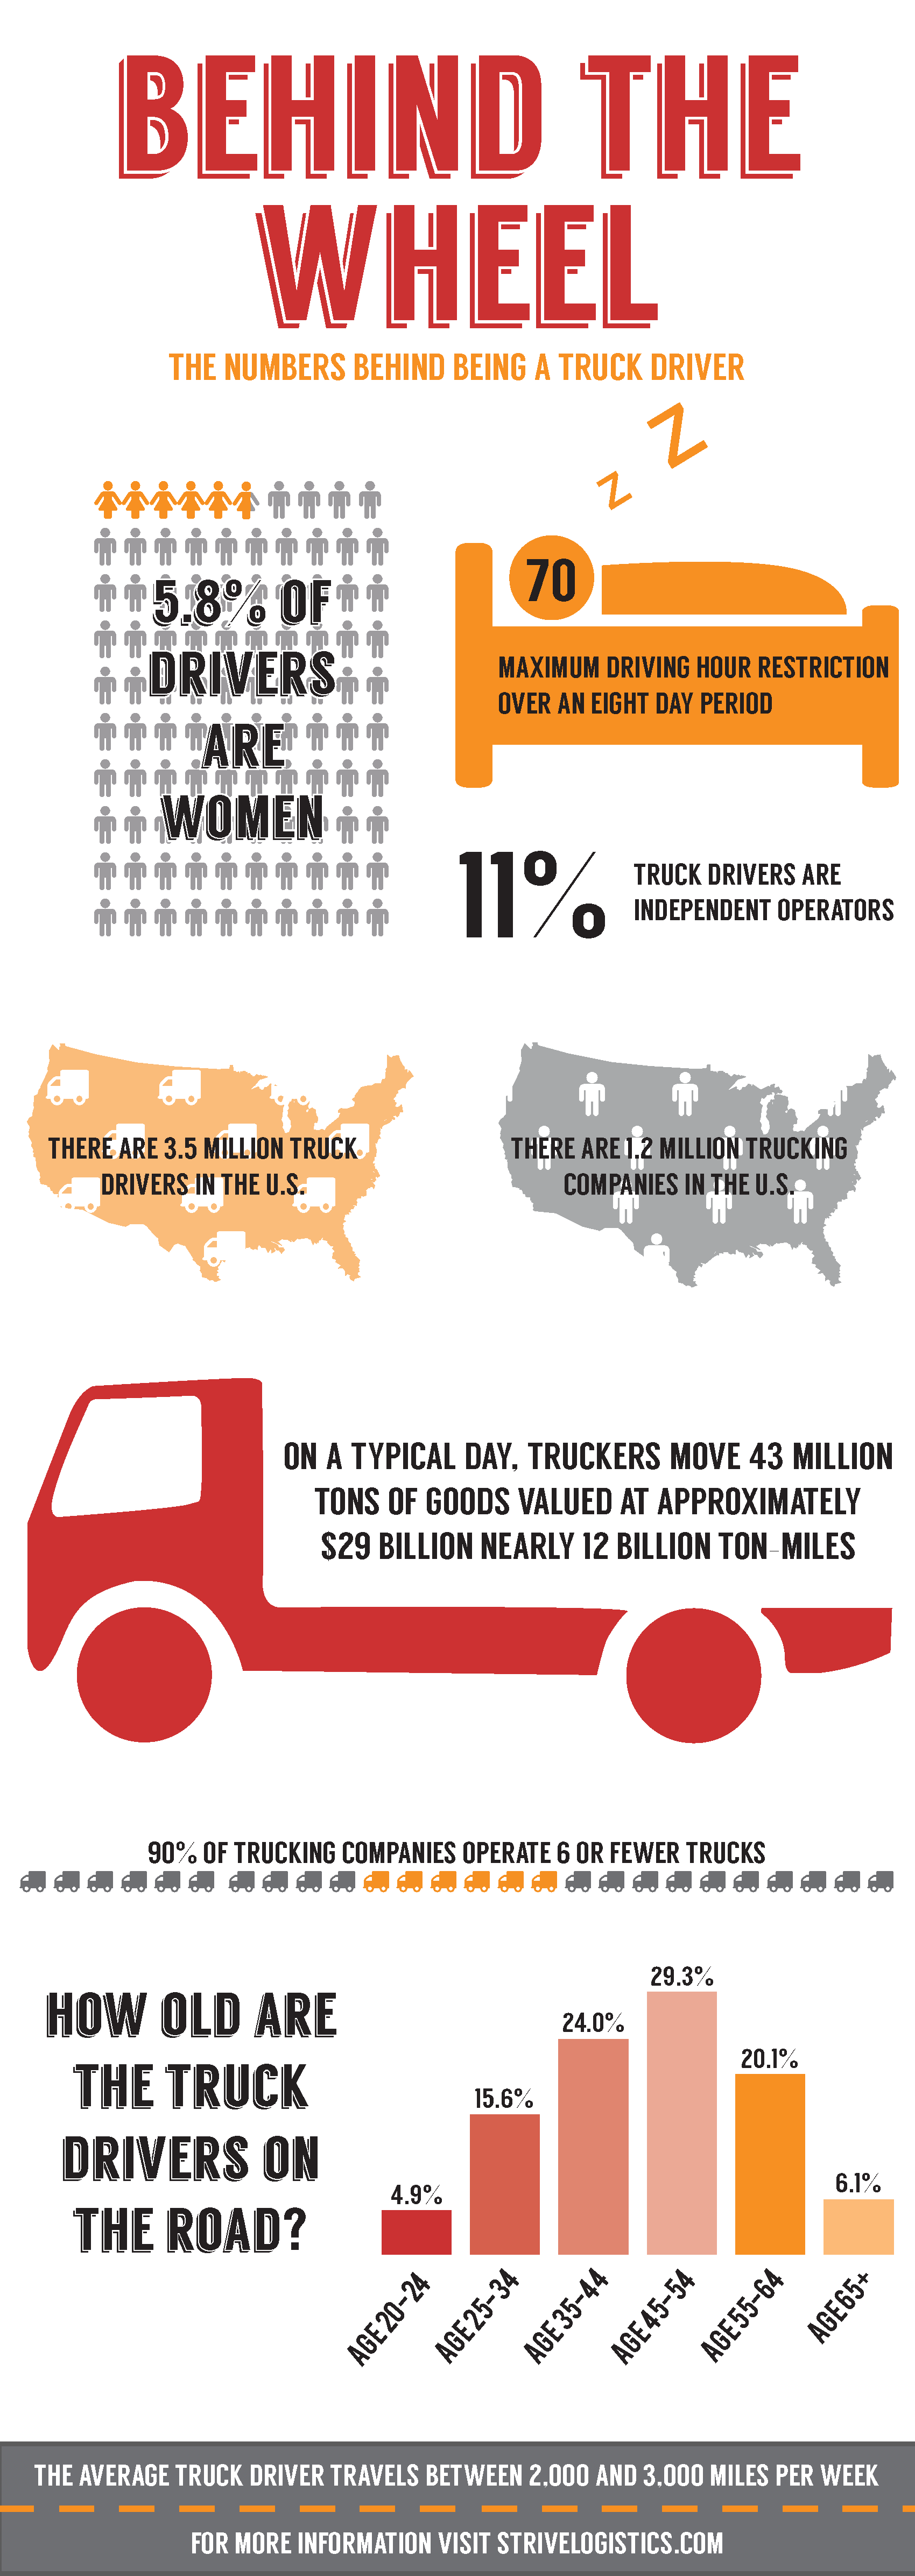 Behind the Wheel: The Numbers Behind Being a Truck Driver